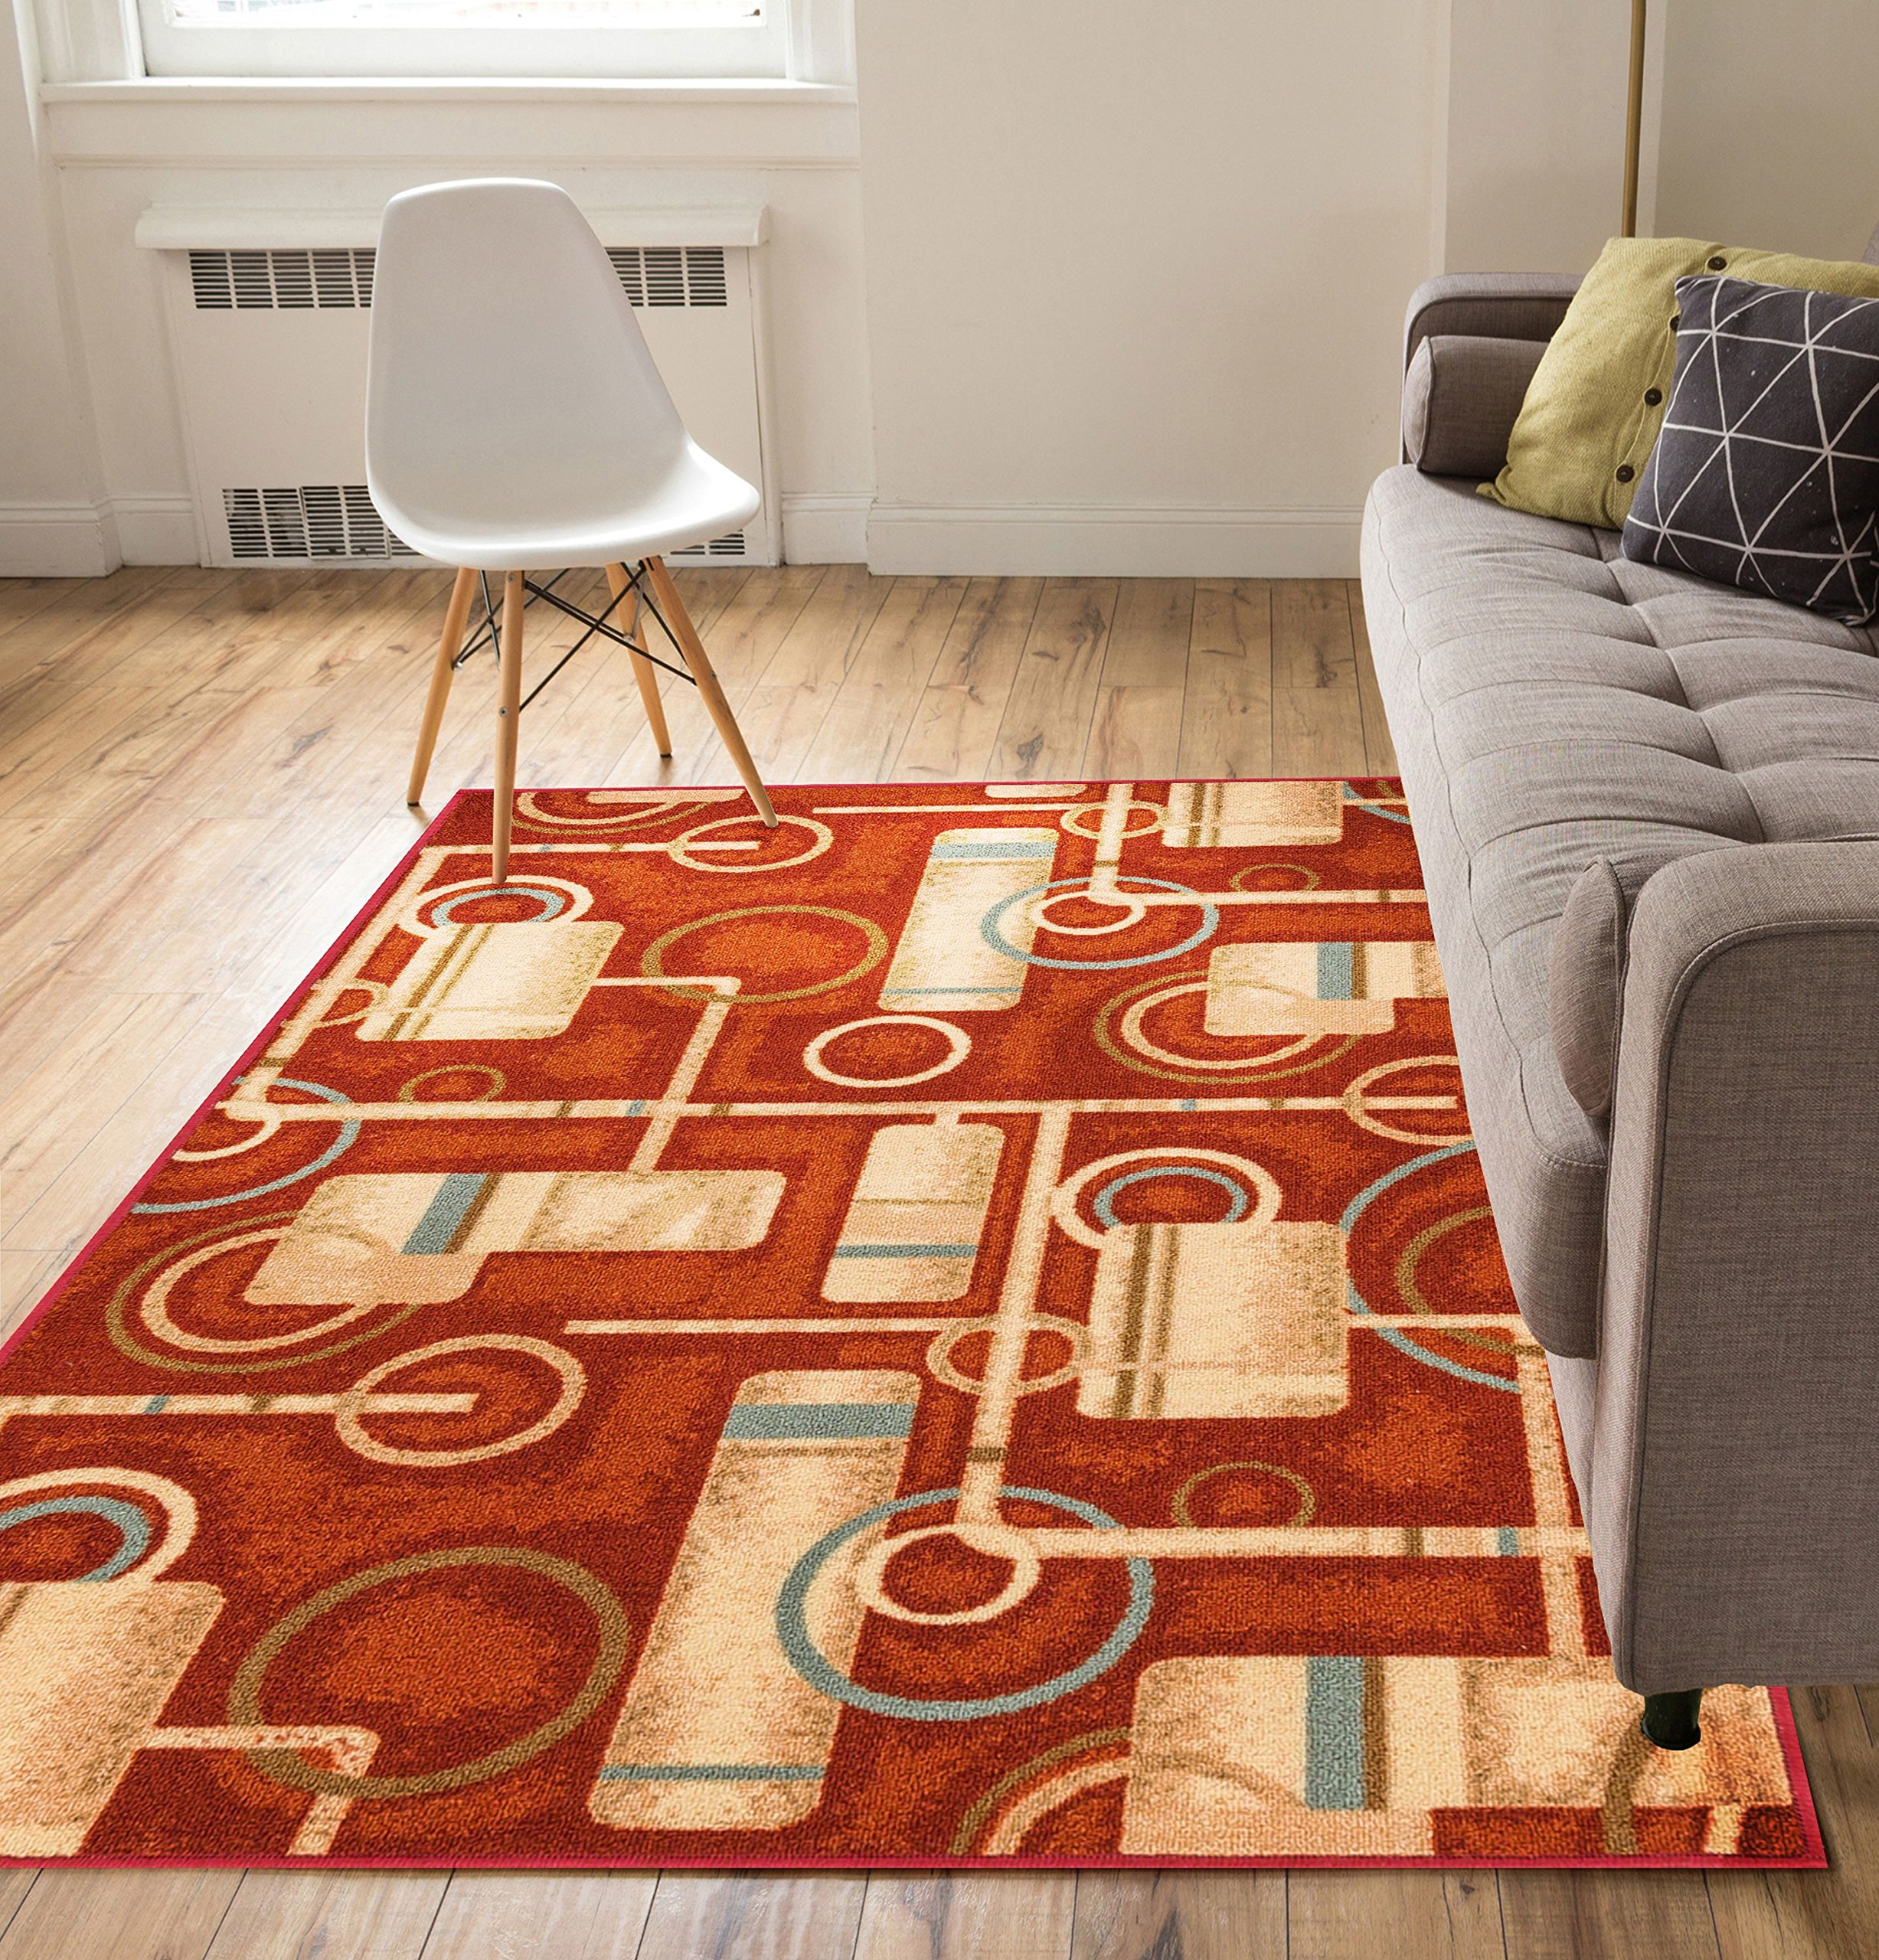 Non-Skid Slip Rubber Back Antibacterial 8x10 ( 7'10'' x 9'10'' ) Area Rug Soho Circles Red Modern Geometric Thin Low Pile Machine Washable Indoor Outdoor Kitchen Hallway Entry